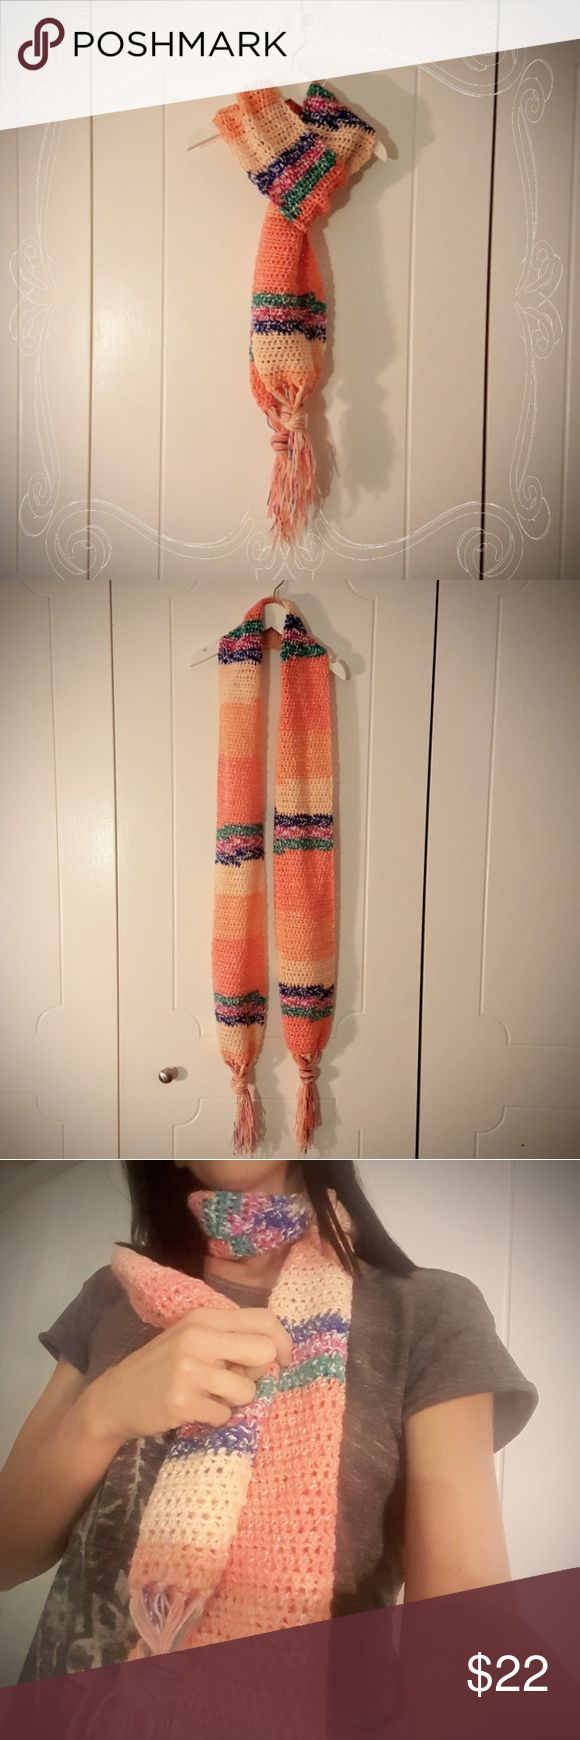 Urban Chic Crochet Coral Scarf with Tassels This scarf is an original design and is made of super soft cotton and acrylic yarn. No wool, non-itchy. Colors vary from coral to light orange with mixes of blue and teal. This scarf is great for any time of year due to it being lightweight and breathable. Give the gift of handmade this year! Measures 2 yards long by 6 inches wide. Tassels are approx 4 inches long (tassels can be untied for a fringe look). Matching hat also available for sale…